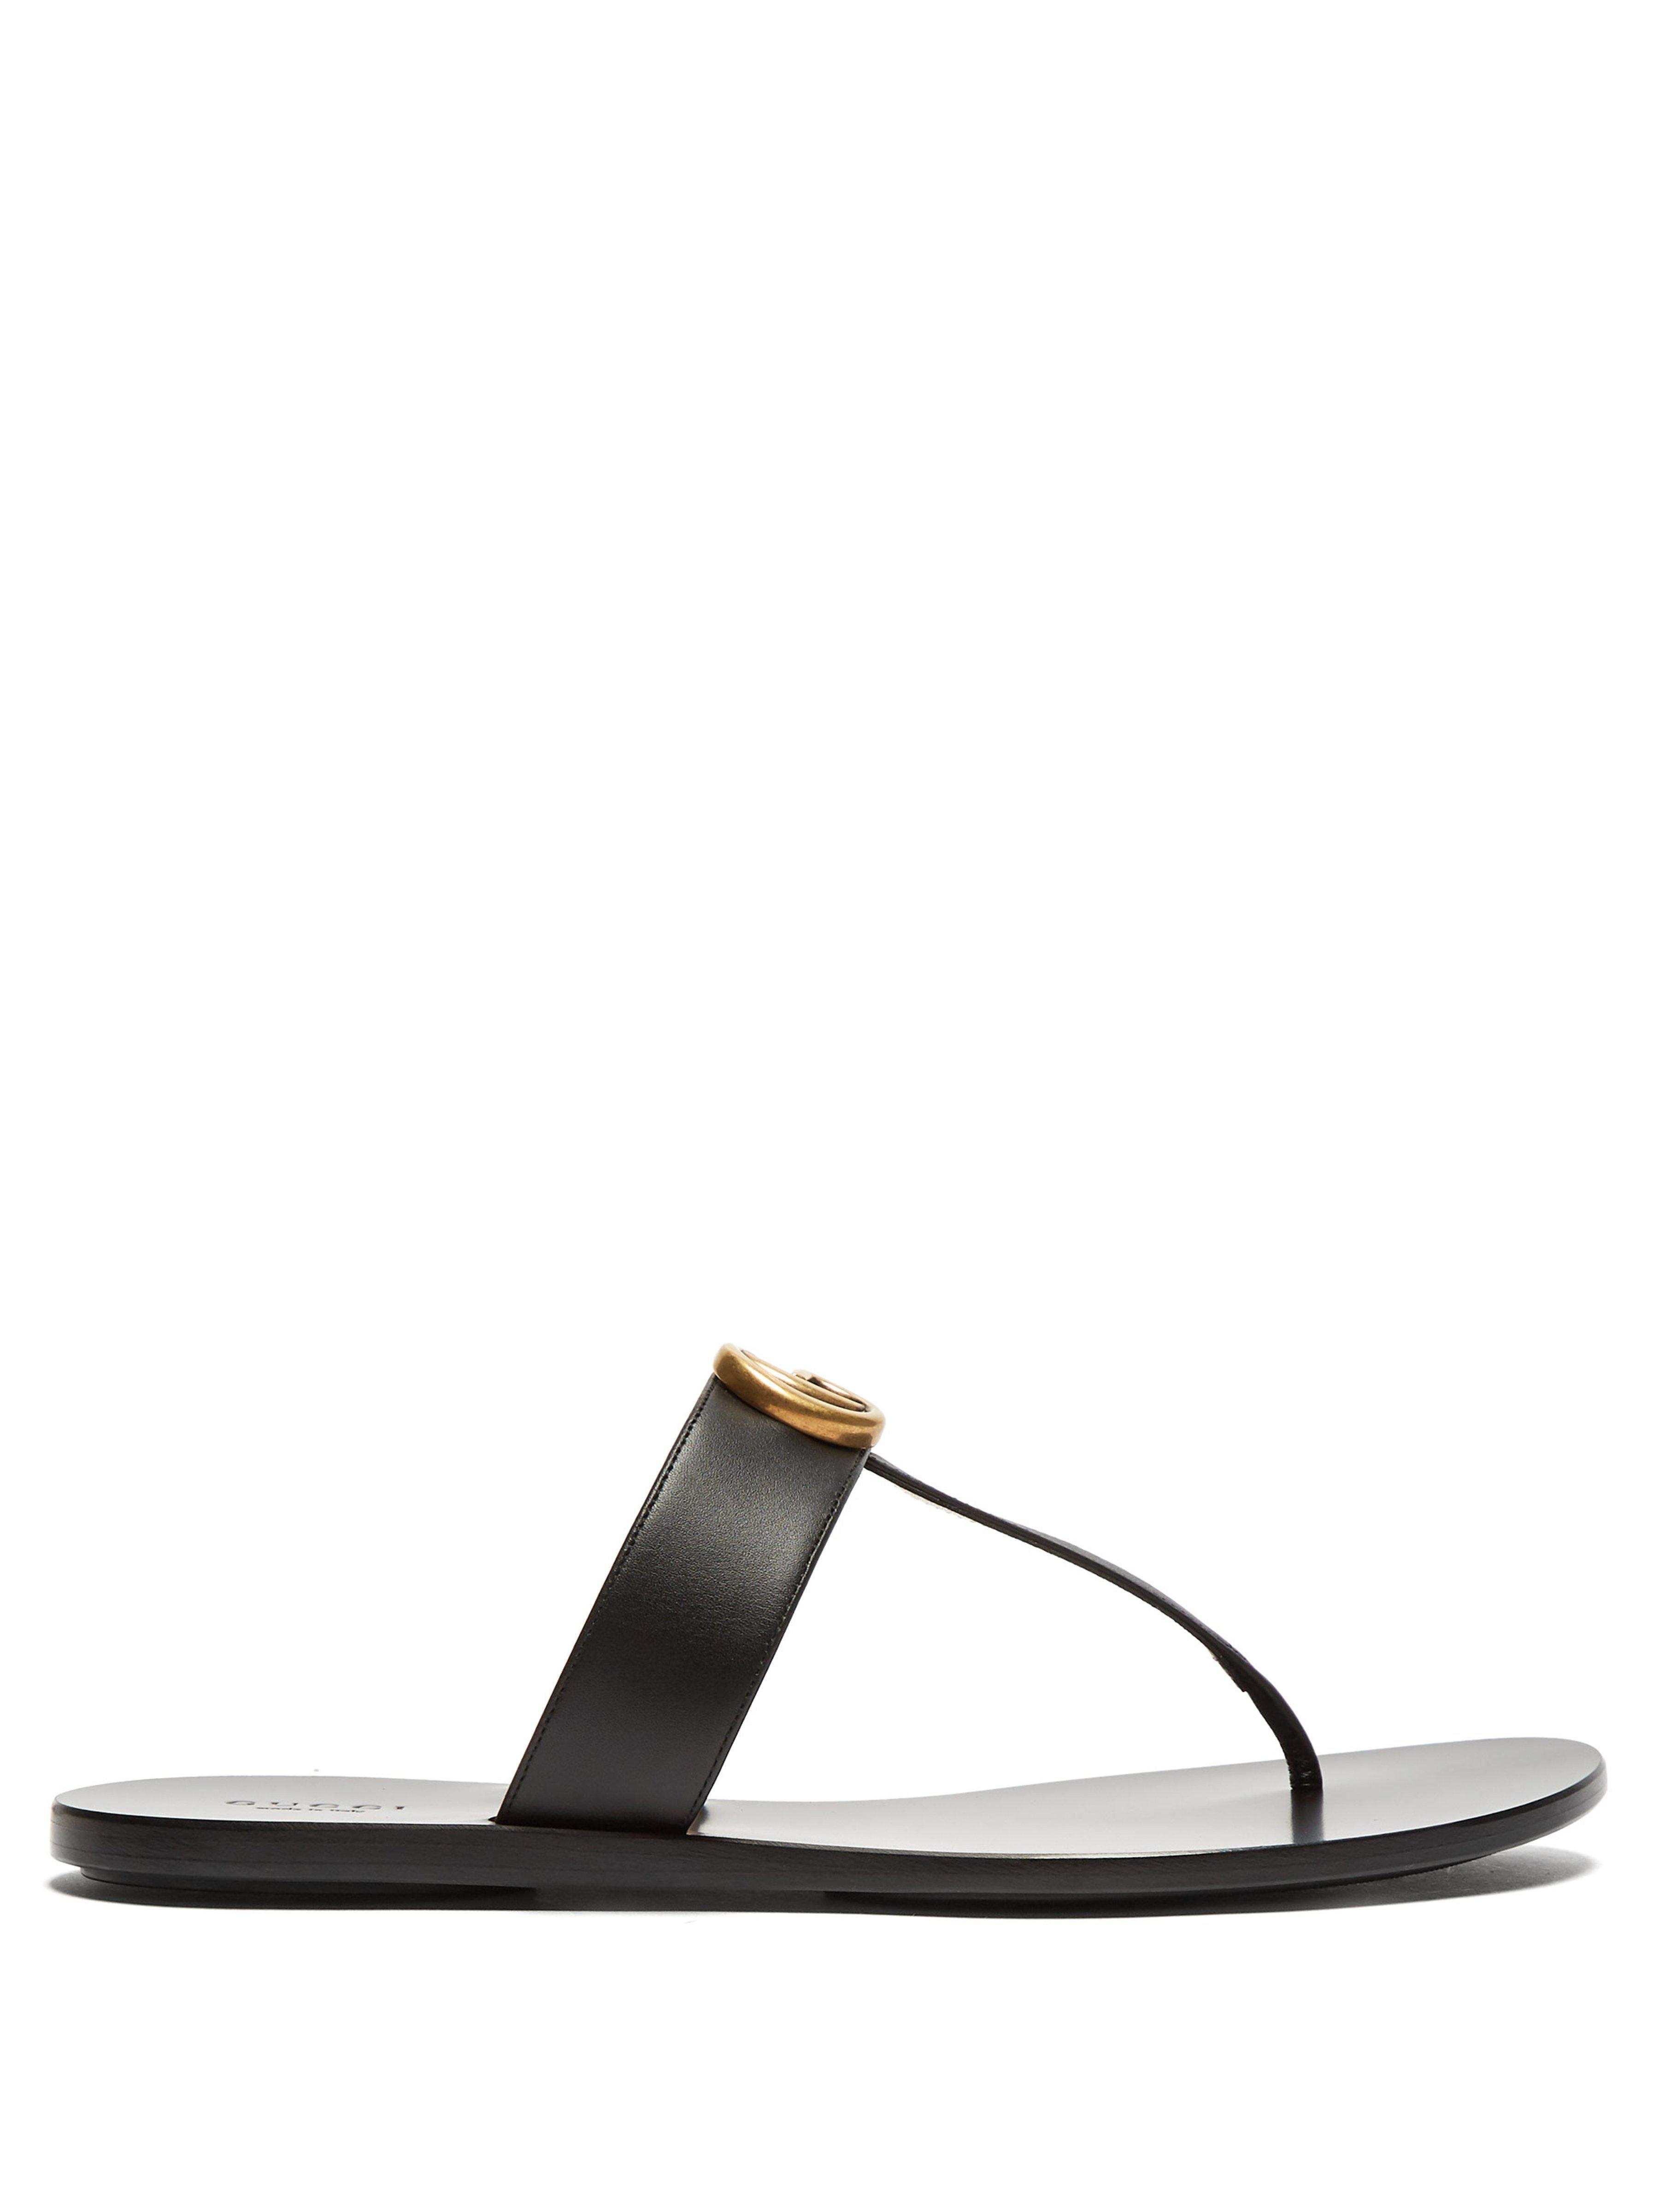 bcefc19e640 Gucci Gg Marmont Flat Leather Sandals in Black - Lyst